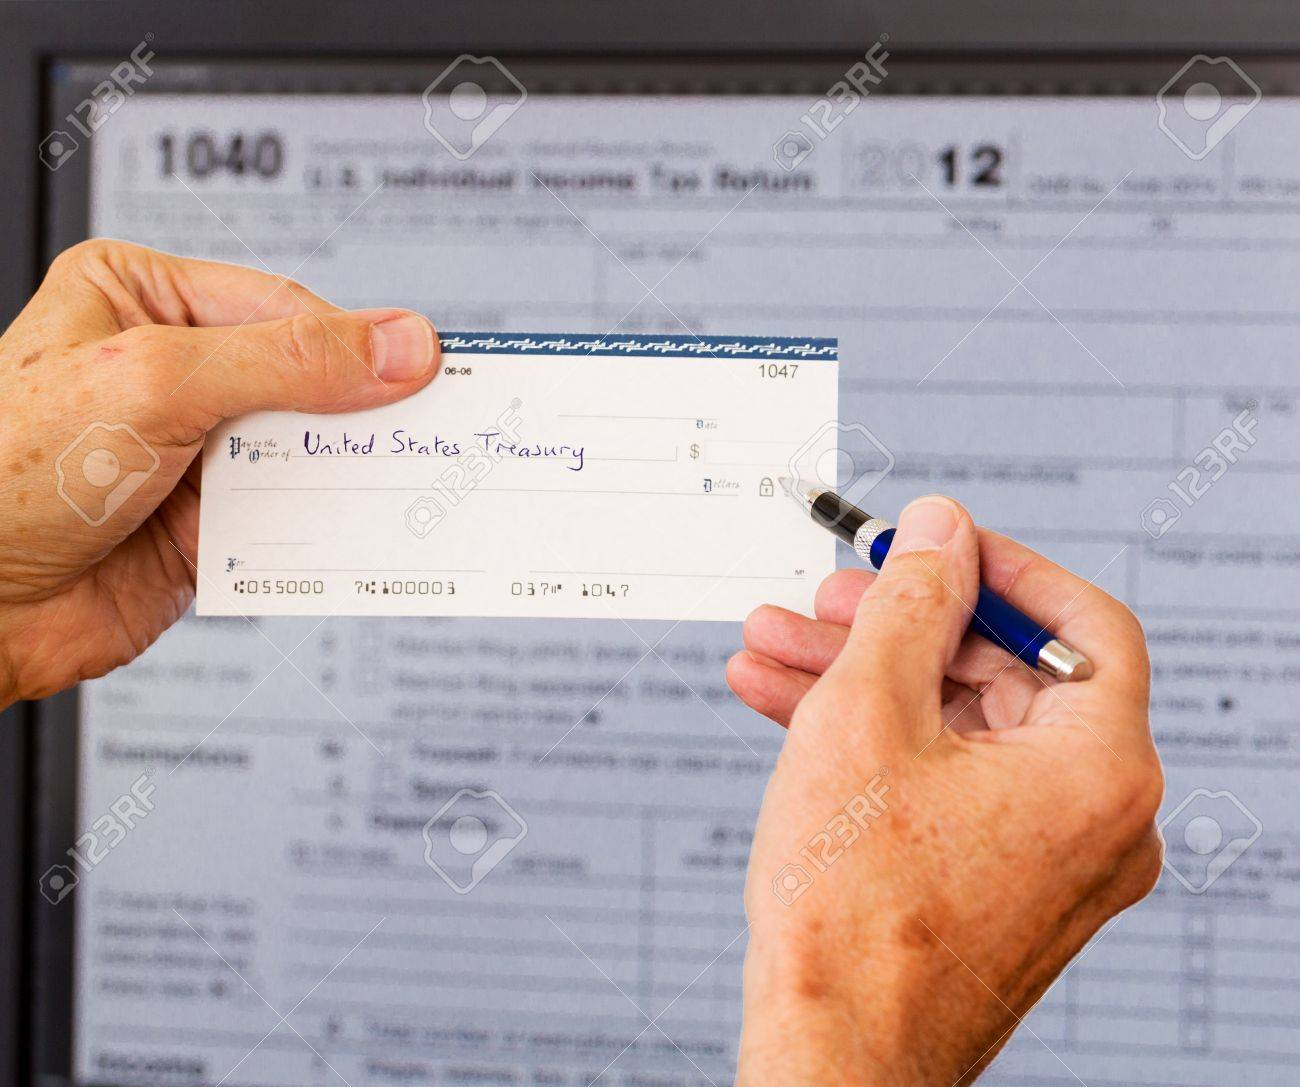 Electronic tax form 1040 for 2012 for us individual return on electronic tax form 1040 for 2012 for us individual return on screen with check payable to falaconquin